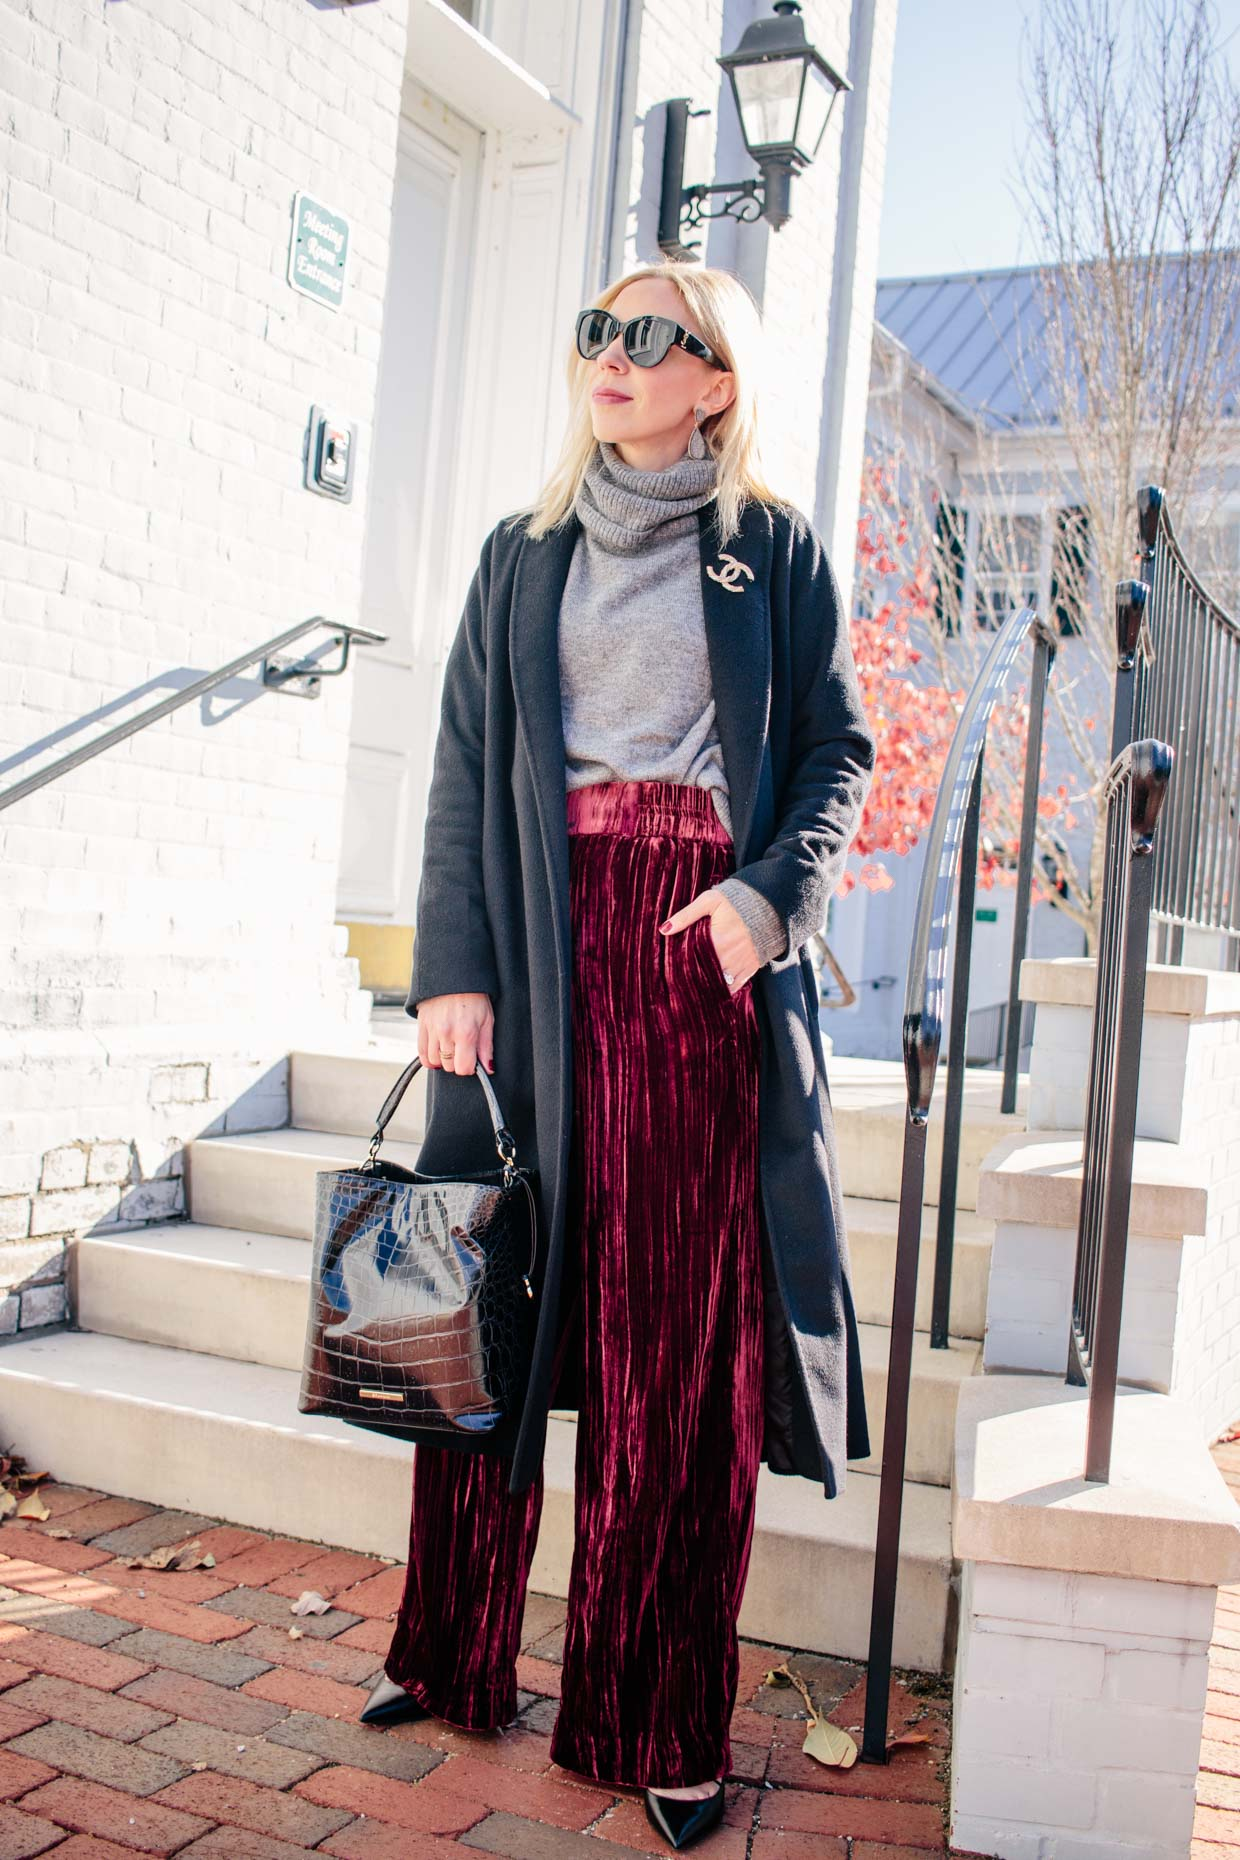 Meagan Brandon Fashion Blogger Of Meagan S Moda Wears Red Velvet Pants With Gray Sweater And Long Black Coat For Holiday Outfit Idea Meagan S Moda